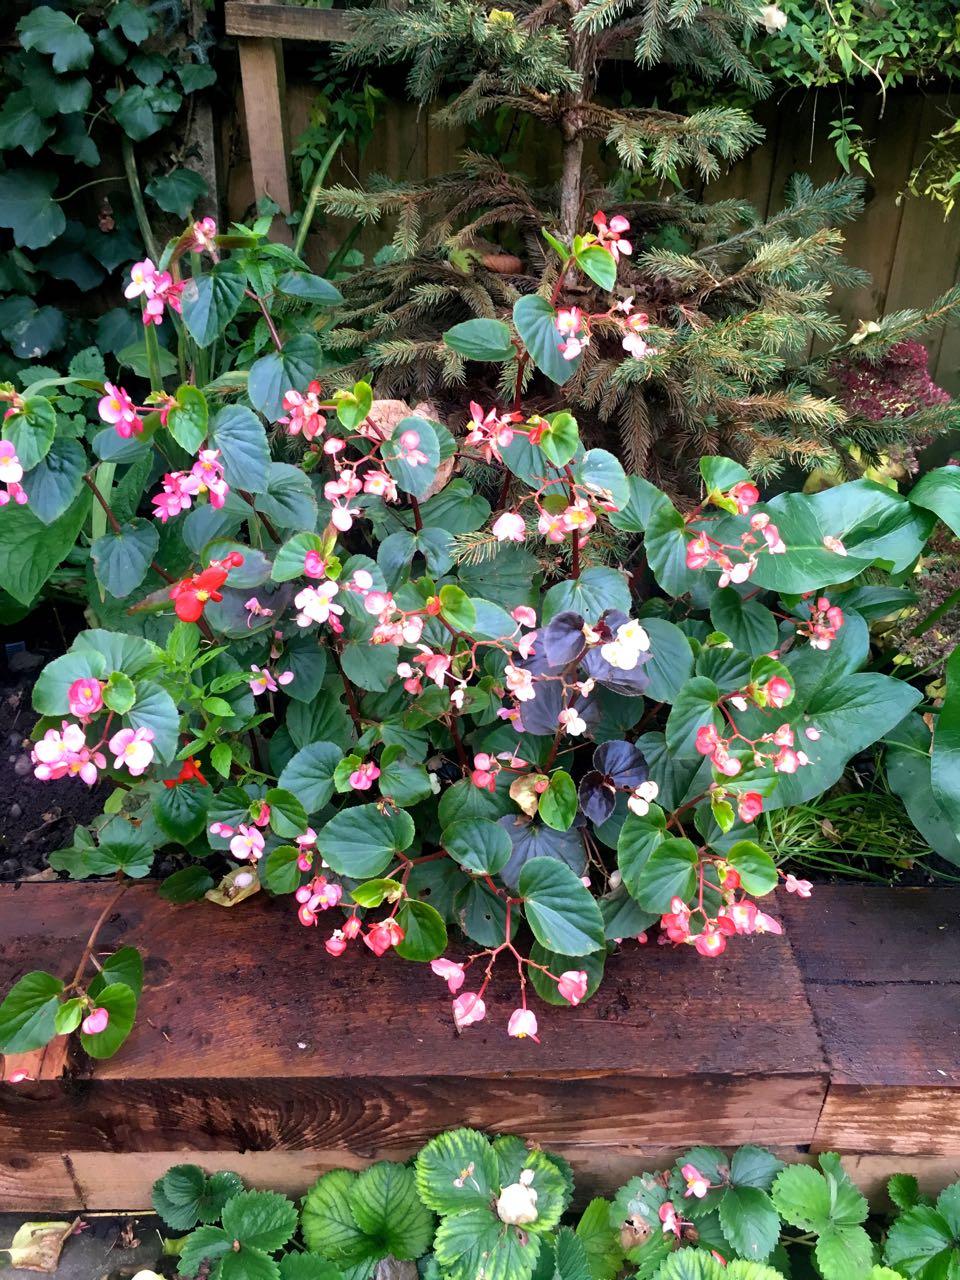 The begonias are still growing and flowering